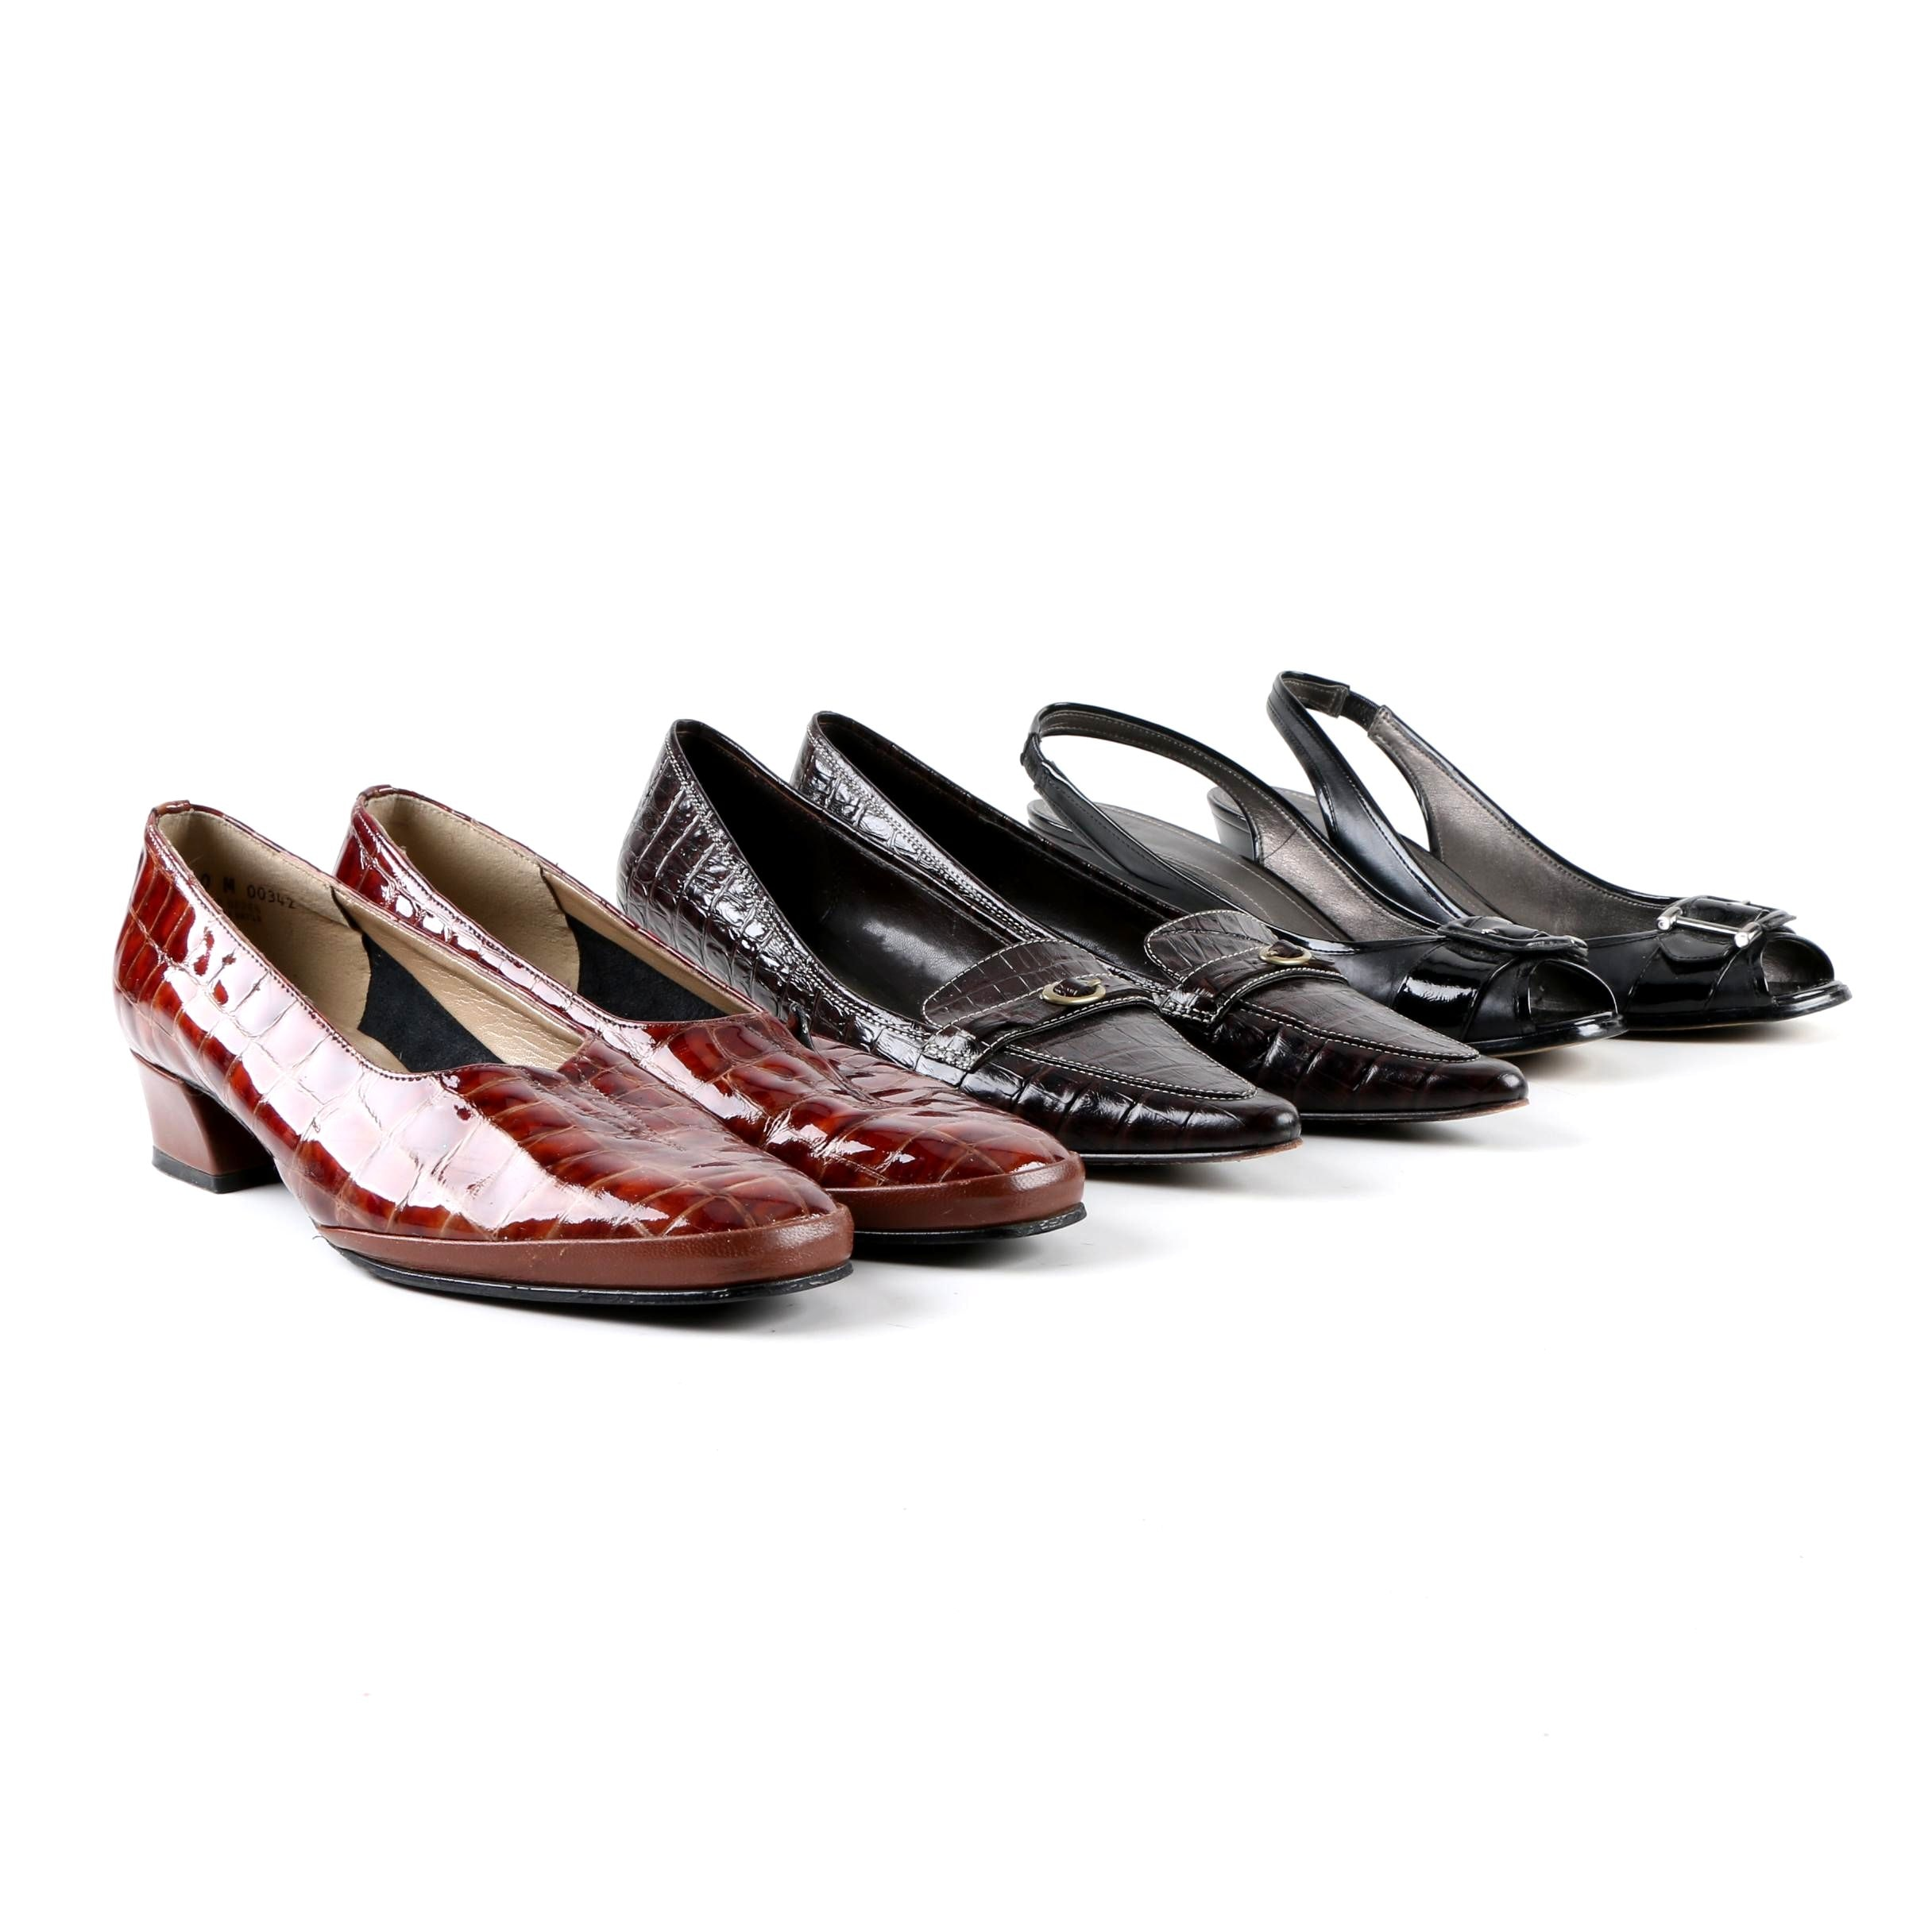 Women's Leather Low-Heeled Shoes Including Circa Joan & David and Magdesians